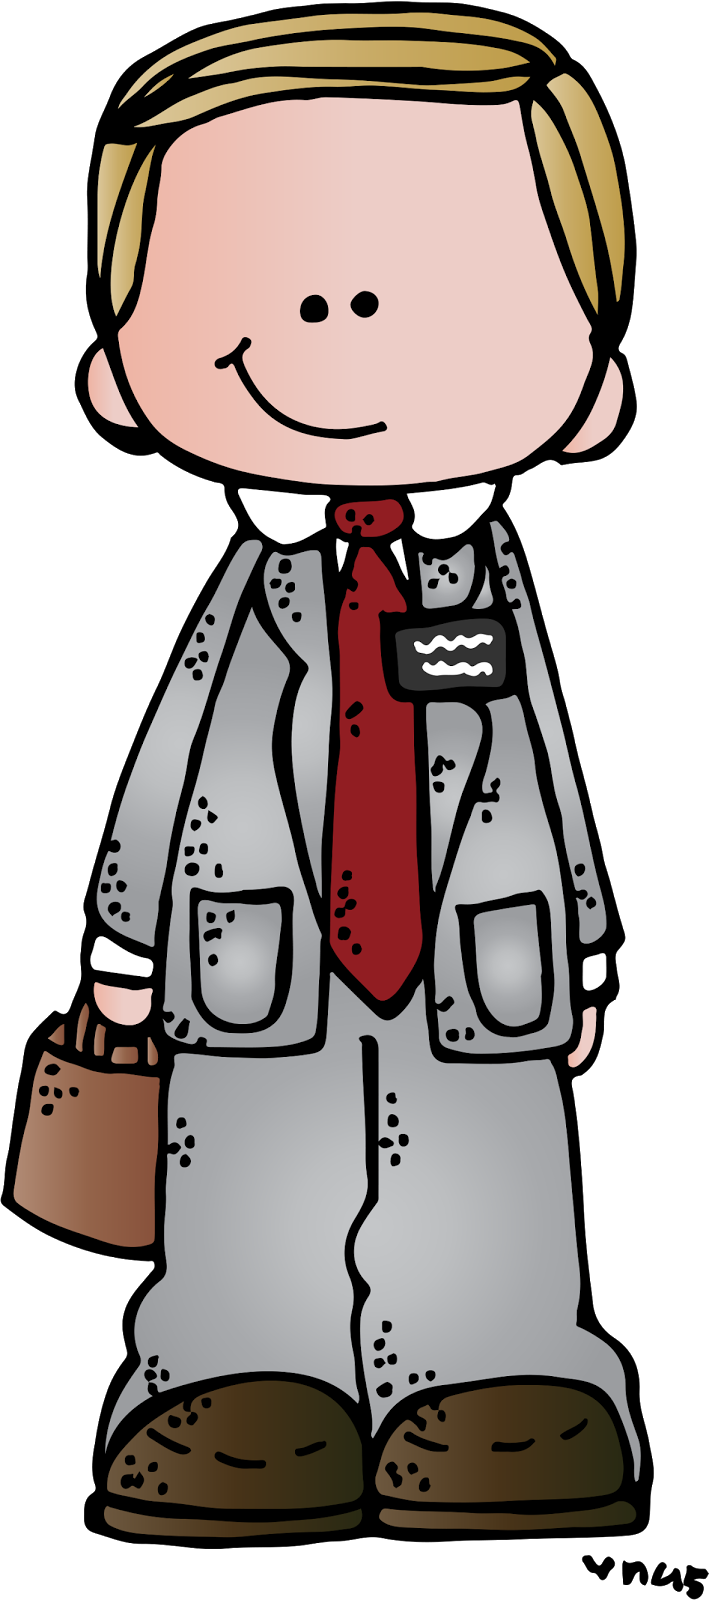 Missionary clipart green tie, Missionary green tie.